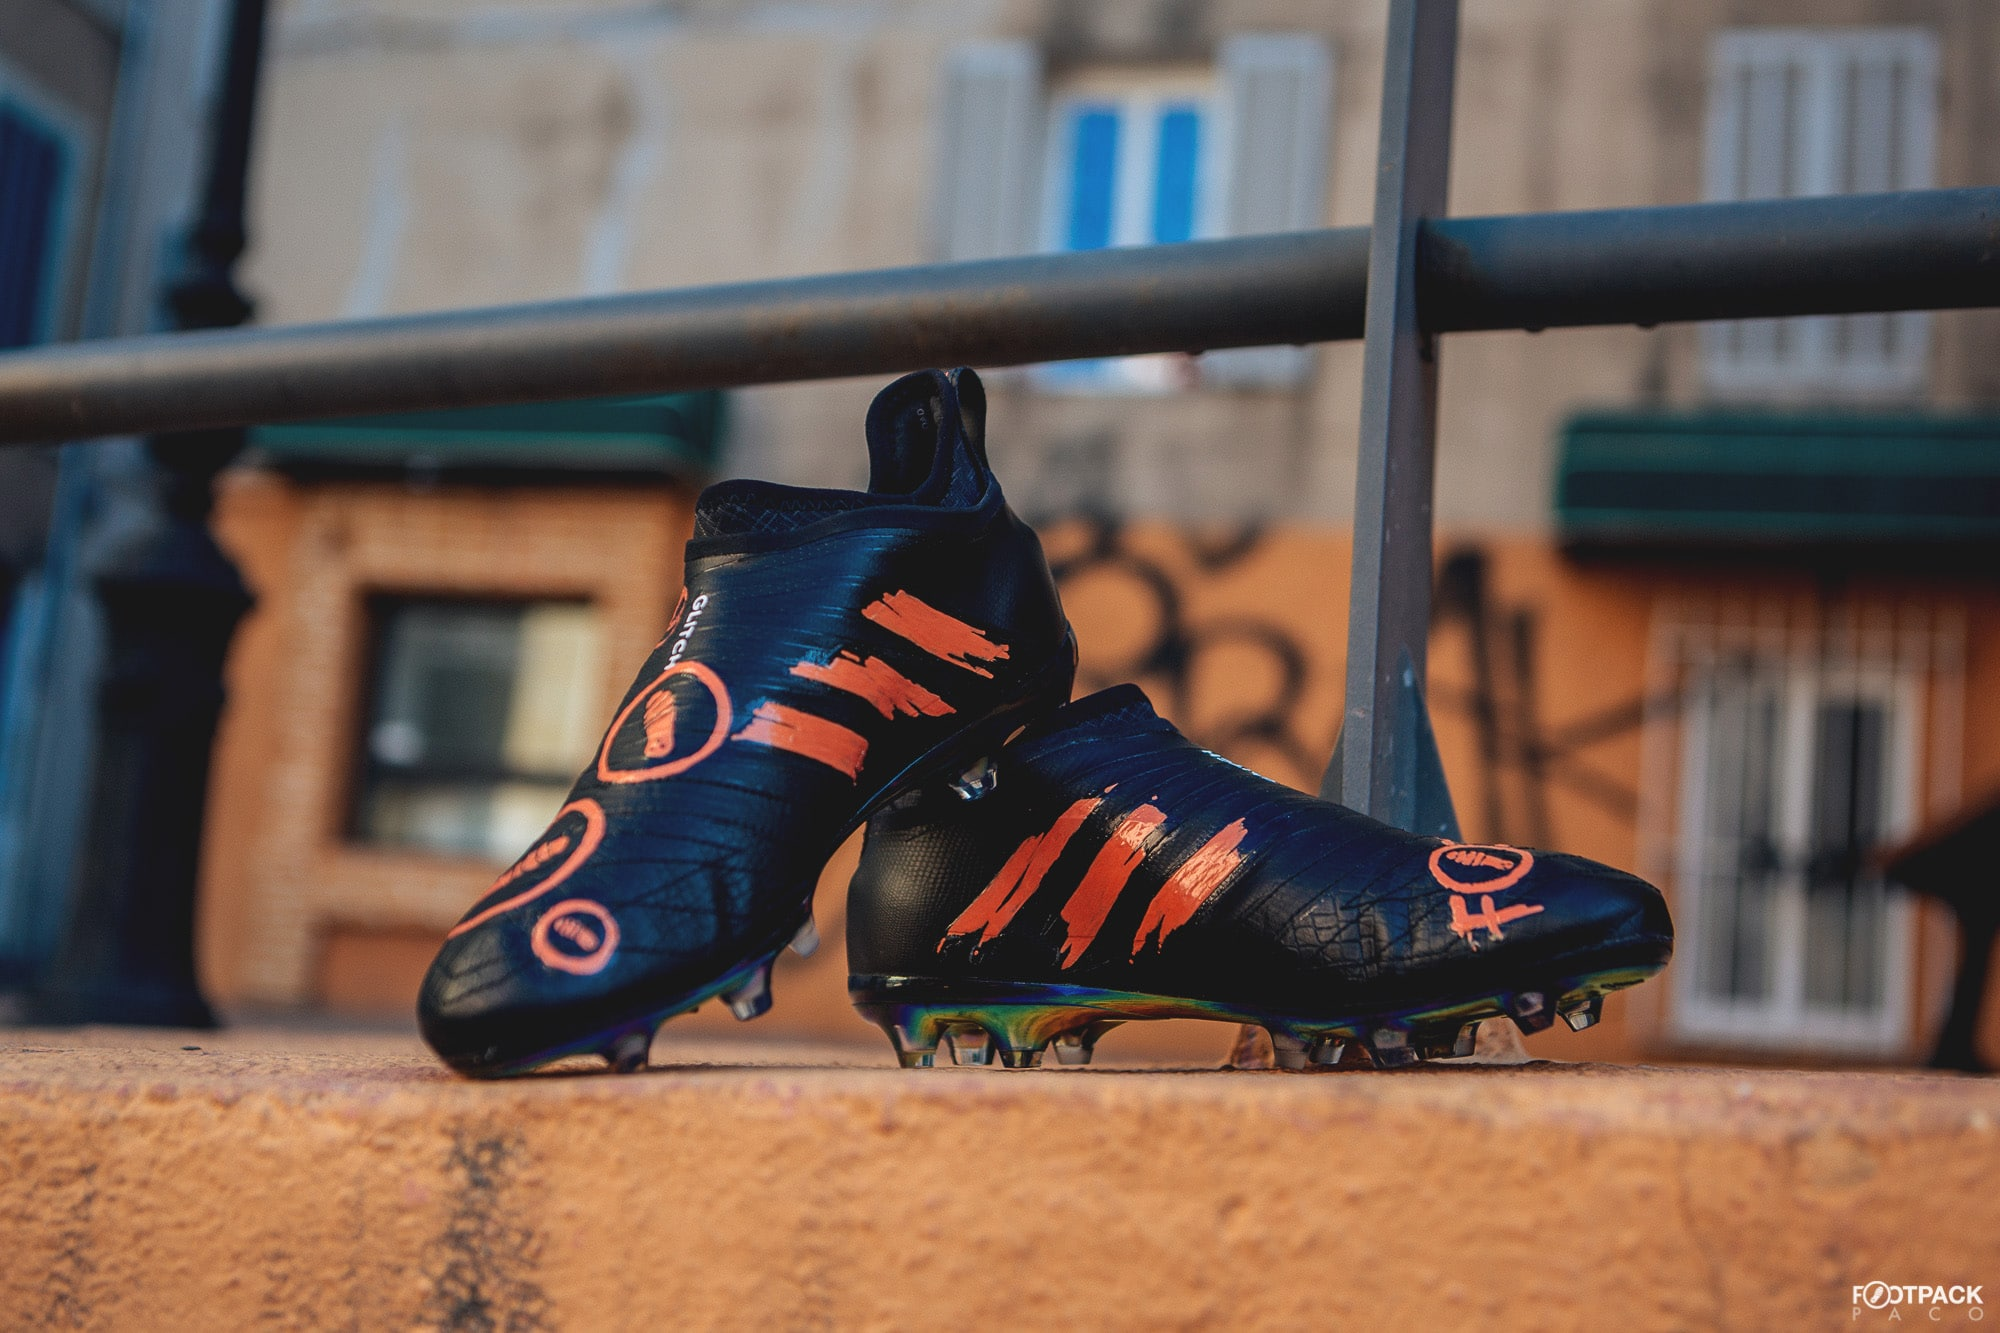 chaussure-football-adidas-glitch-footpack-orravan-design-avril-2018-4